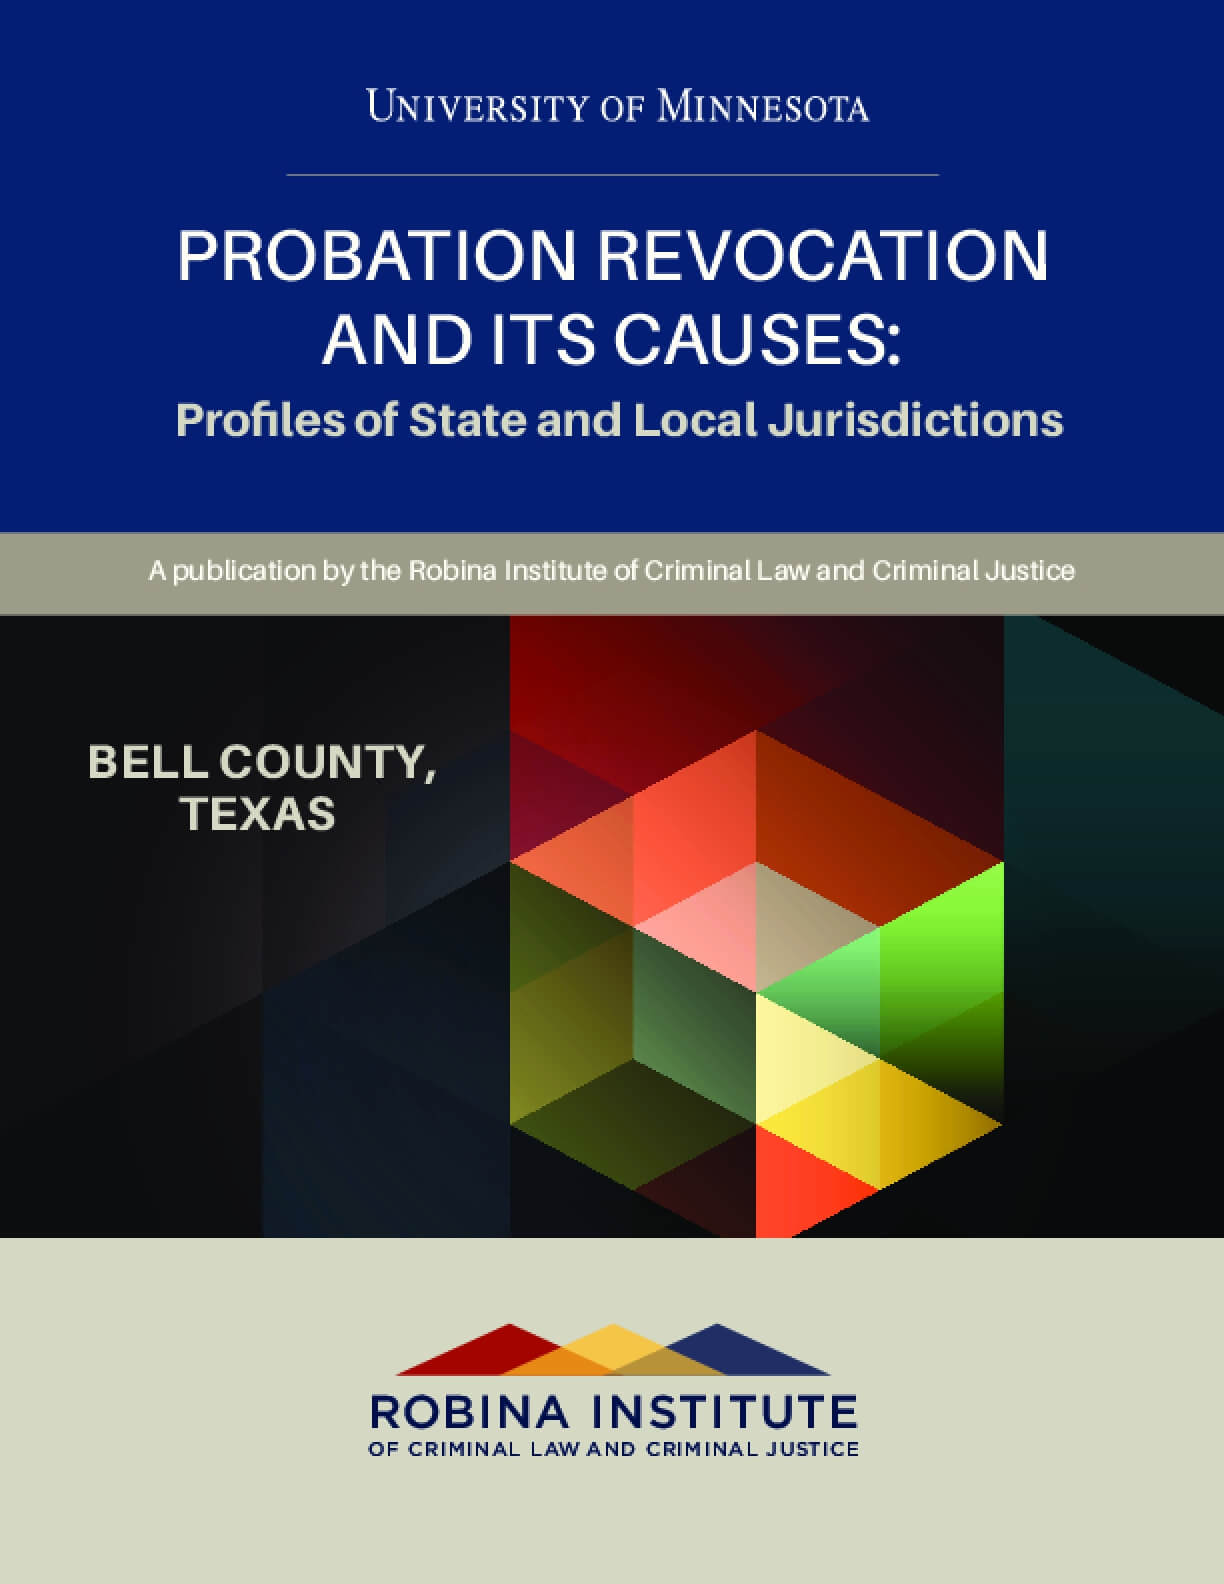 Probation Revocation and Its Causes: Profiles of State and Local Jurisdictions, Bell County, Texas